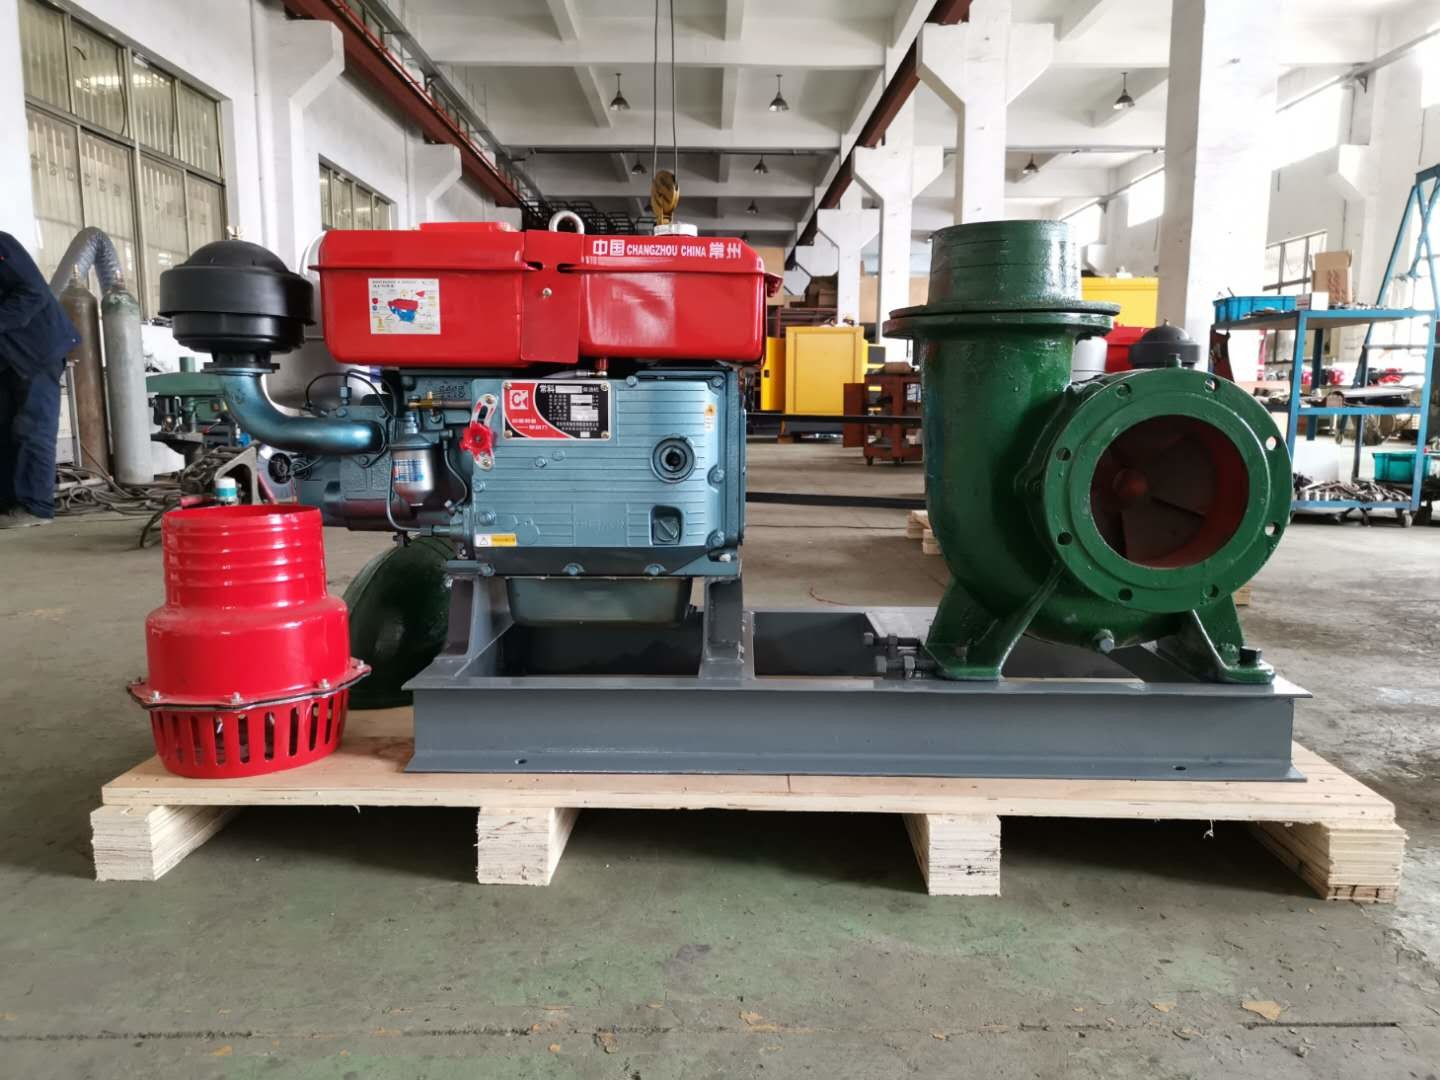 Copy Honda 8 Inch Diesel Water Pump , High Volume Farm Irrigation Pumps